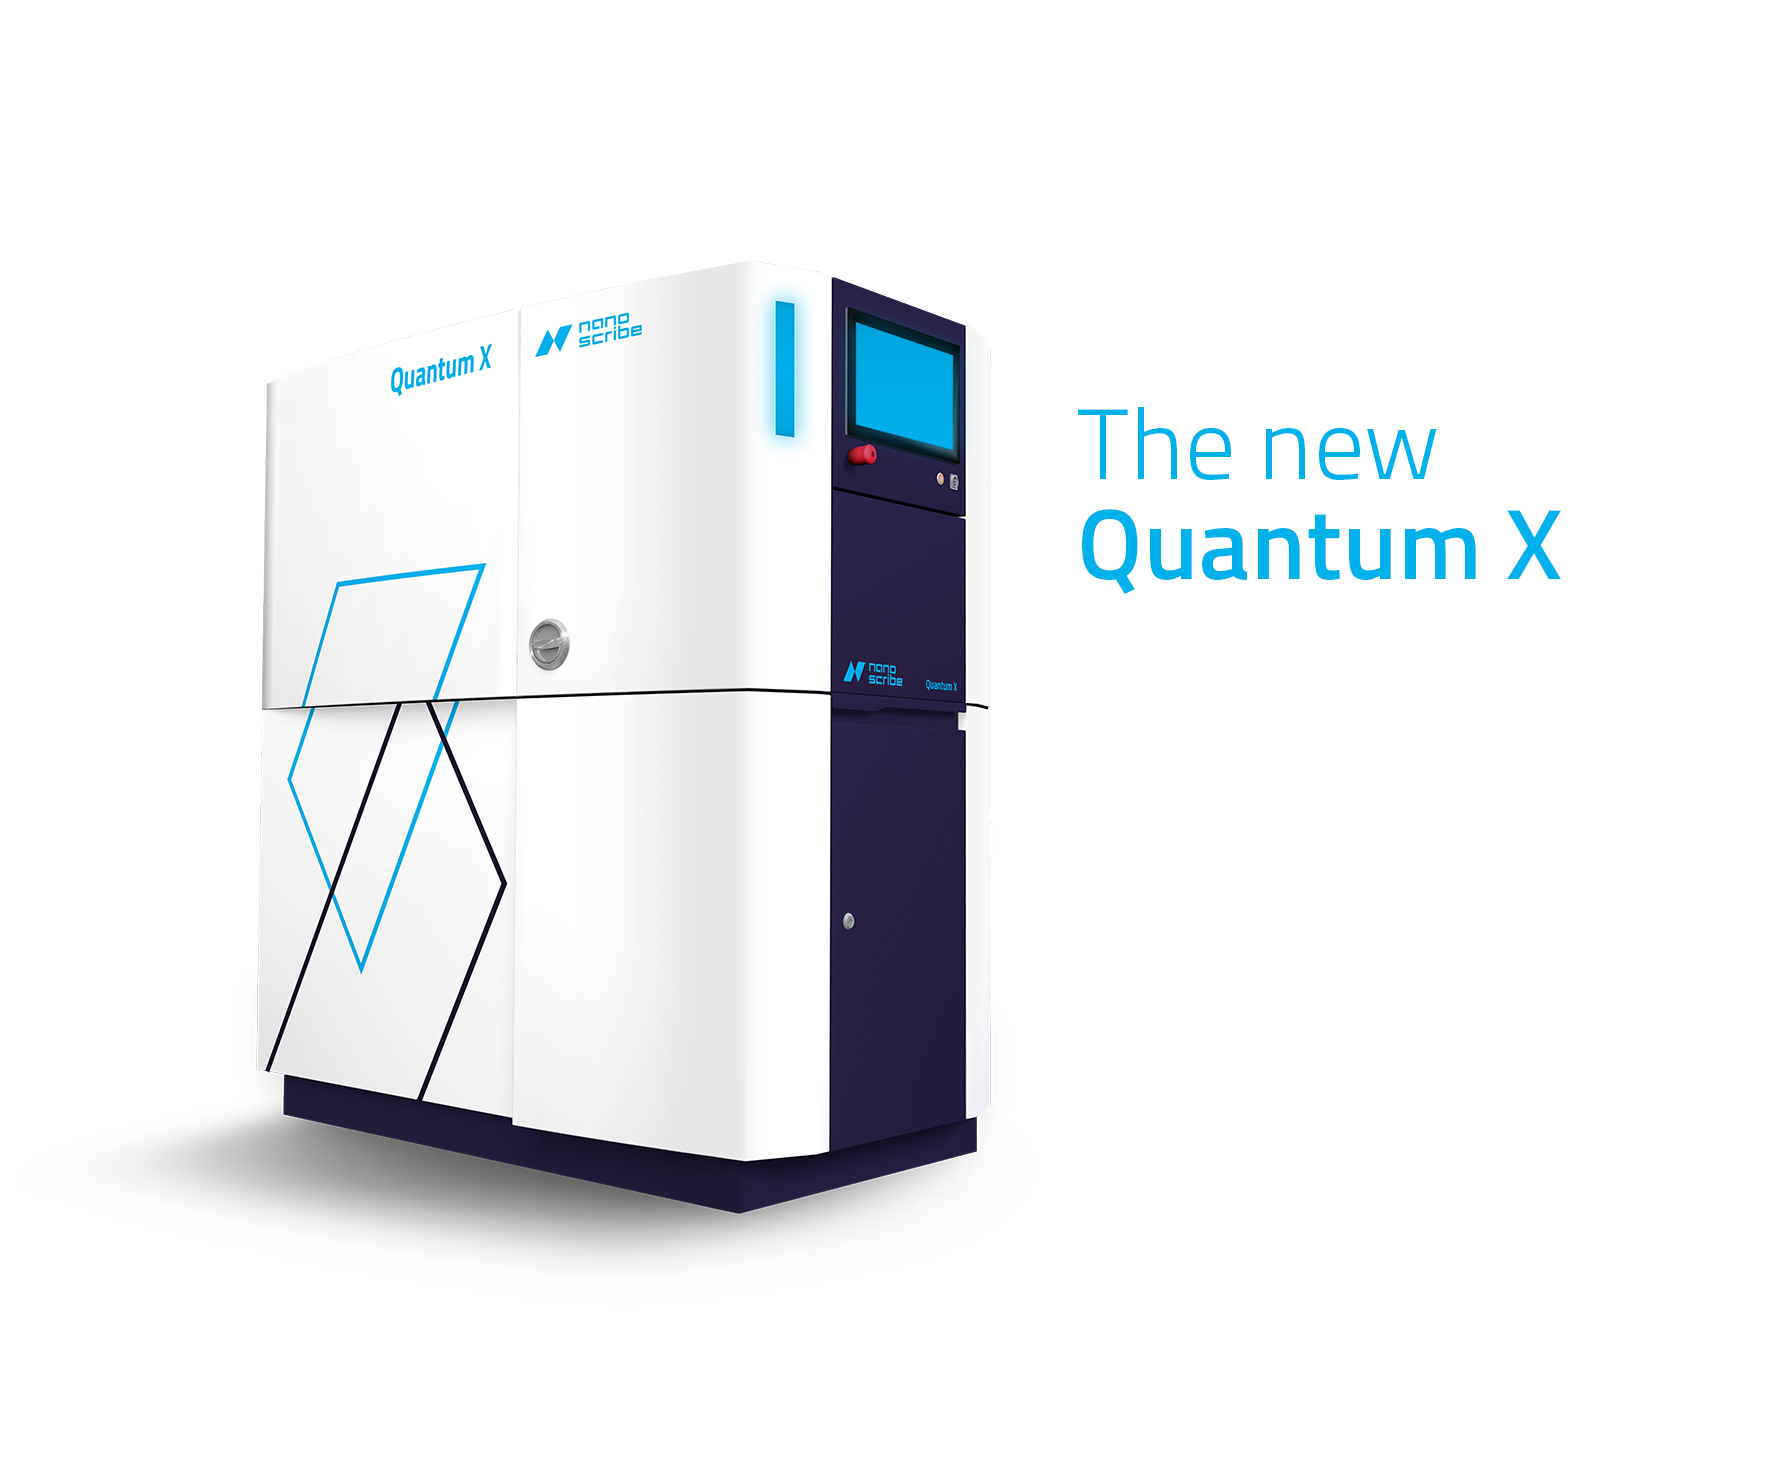 The two-photon Quantum X machine. Image via Nanoscribe.